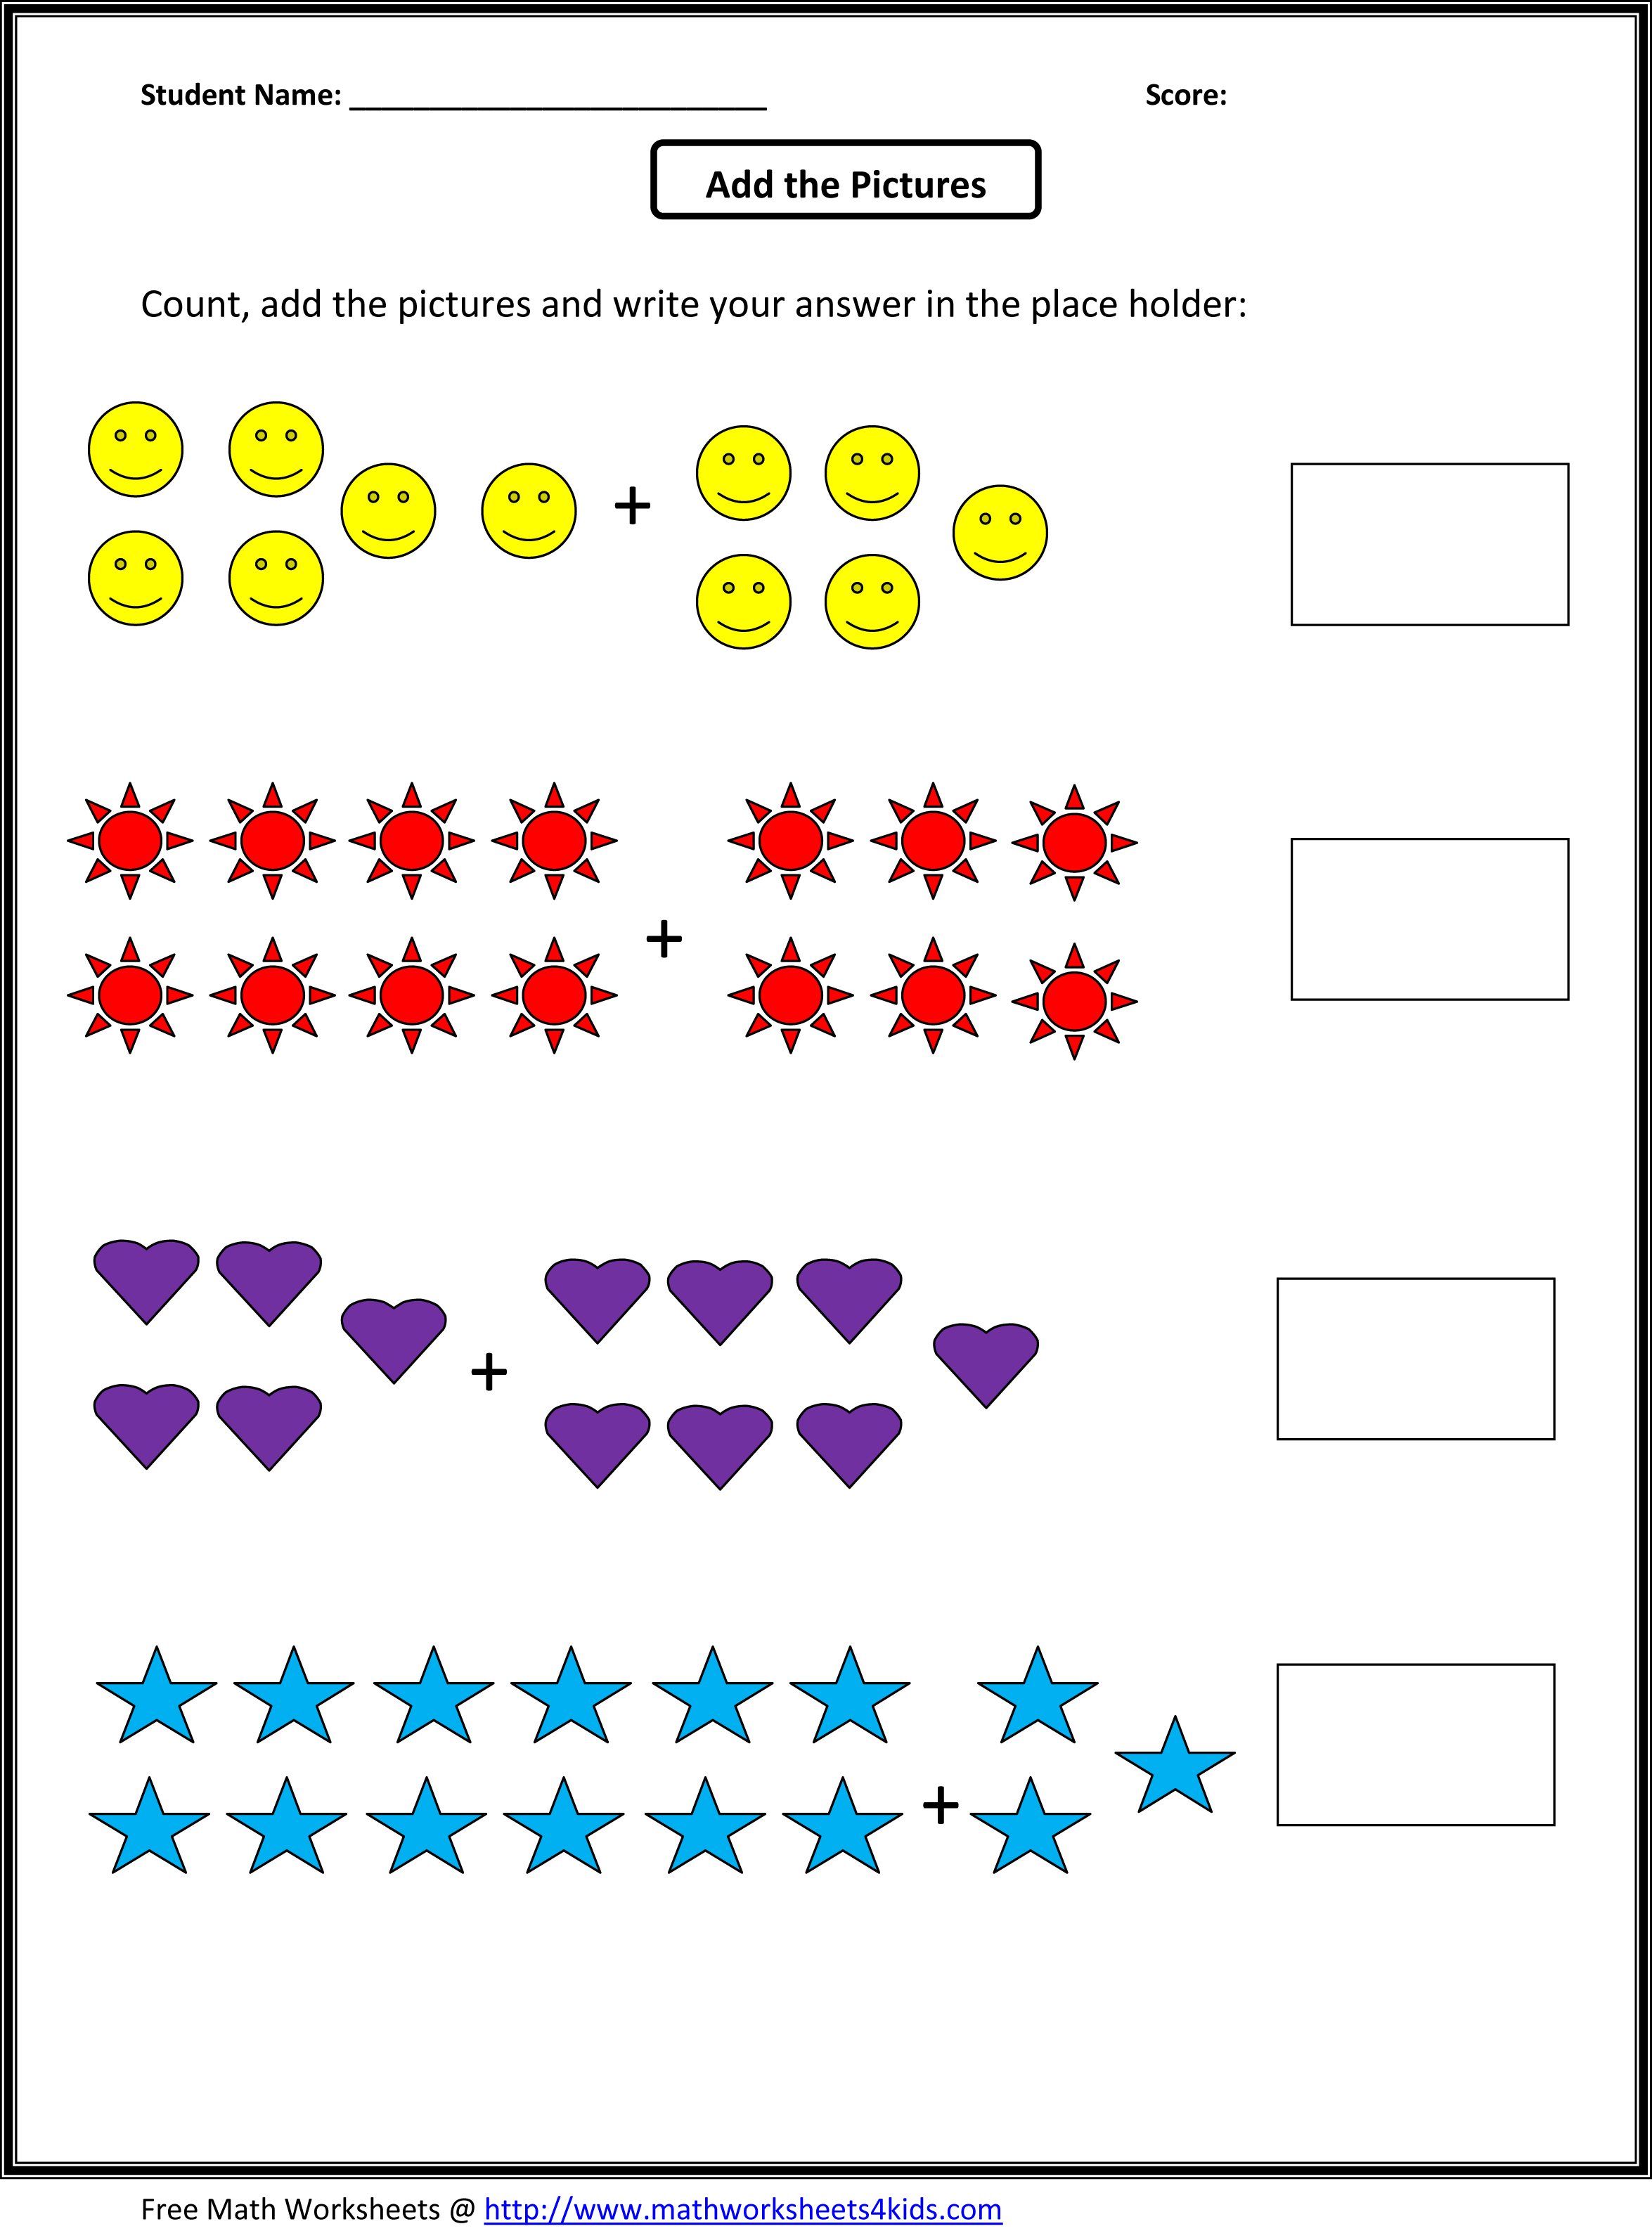 Proatmealus  Marvelous Grade  Maths Worksheet  Reocurent With Licious Math Worksheets For St Grade Free  Reocurent With Appealing Worksheet For Small Alphabets Also Moles Molecules And Grams Worksheet Answer Key In Addition Parts Of The Body Esl Worksheet And Blending Worksheets As Well As Graphing Linear Inequalities Worksheet Answers Additionally Properties Of Integers Worksheet From Reocurentcom With Proatmealus  Licious Grade  Maths Worksheet  Reocurent With Appealing Math Worksheets For St Grade Free  Reocurent And Marvelous Worksheet For Small Alphabets Also Moles Molecules And Grams Worksheet Answer Key In Addition Parts Of The Body Esl Worksheet From Reocurentcom